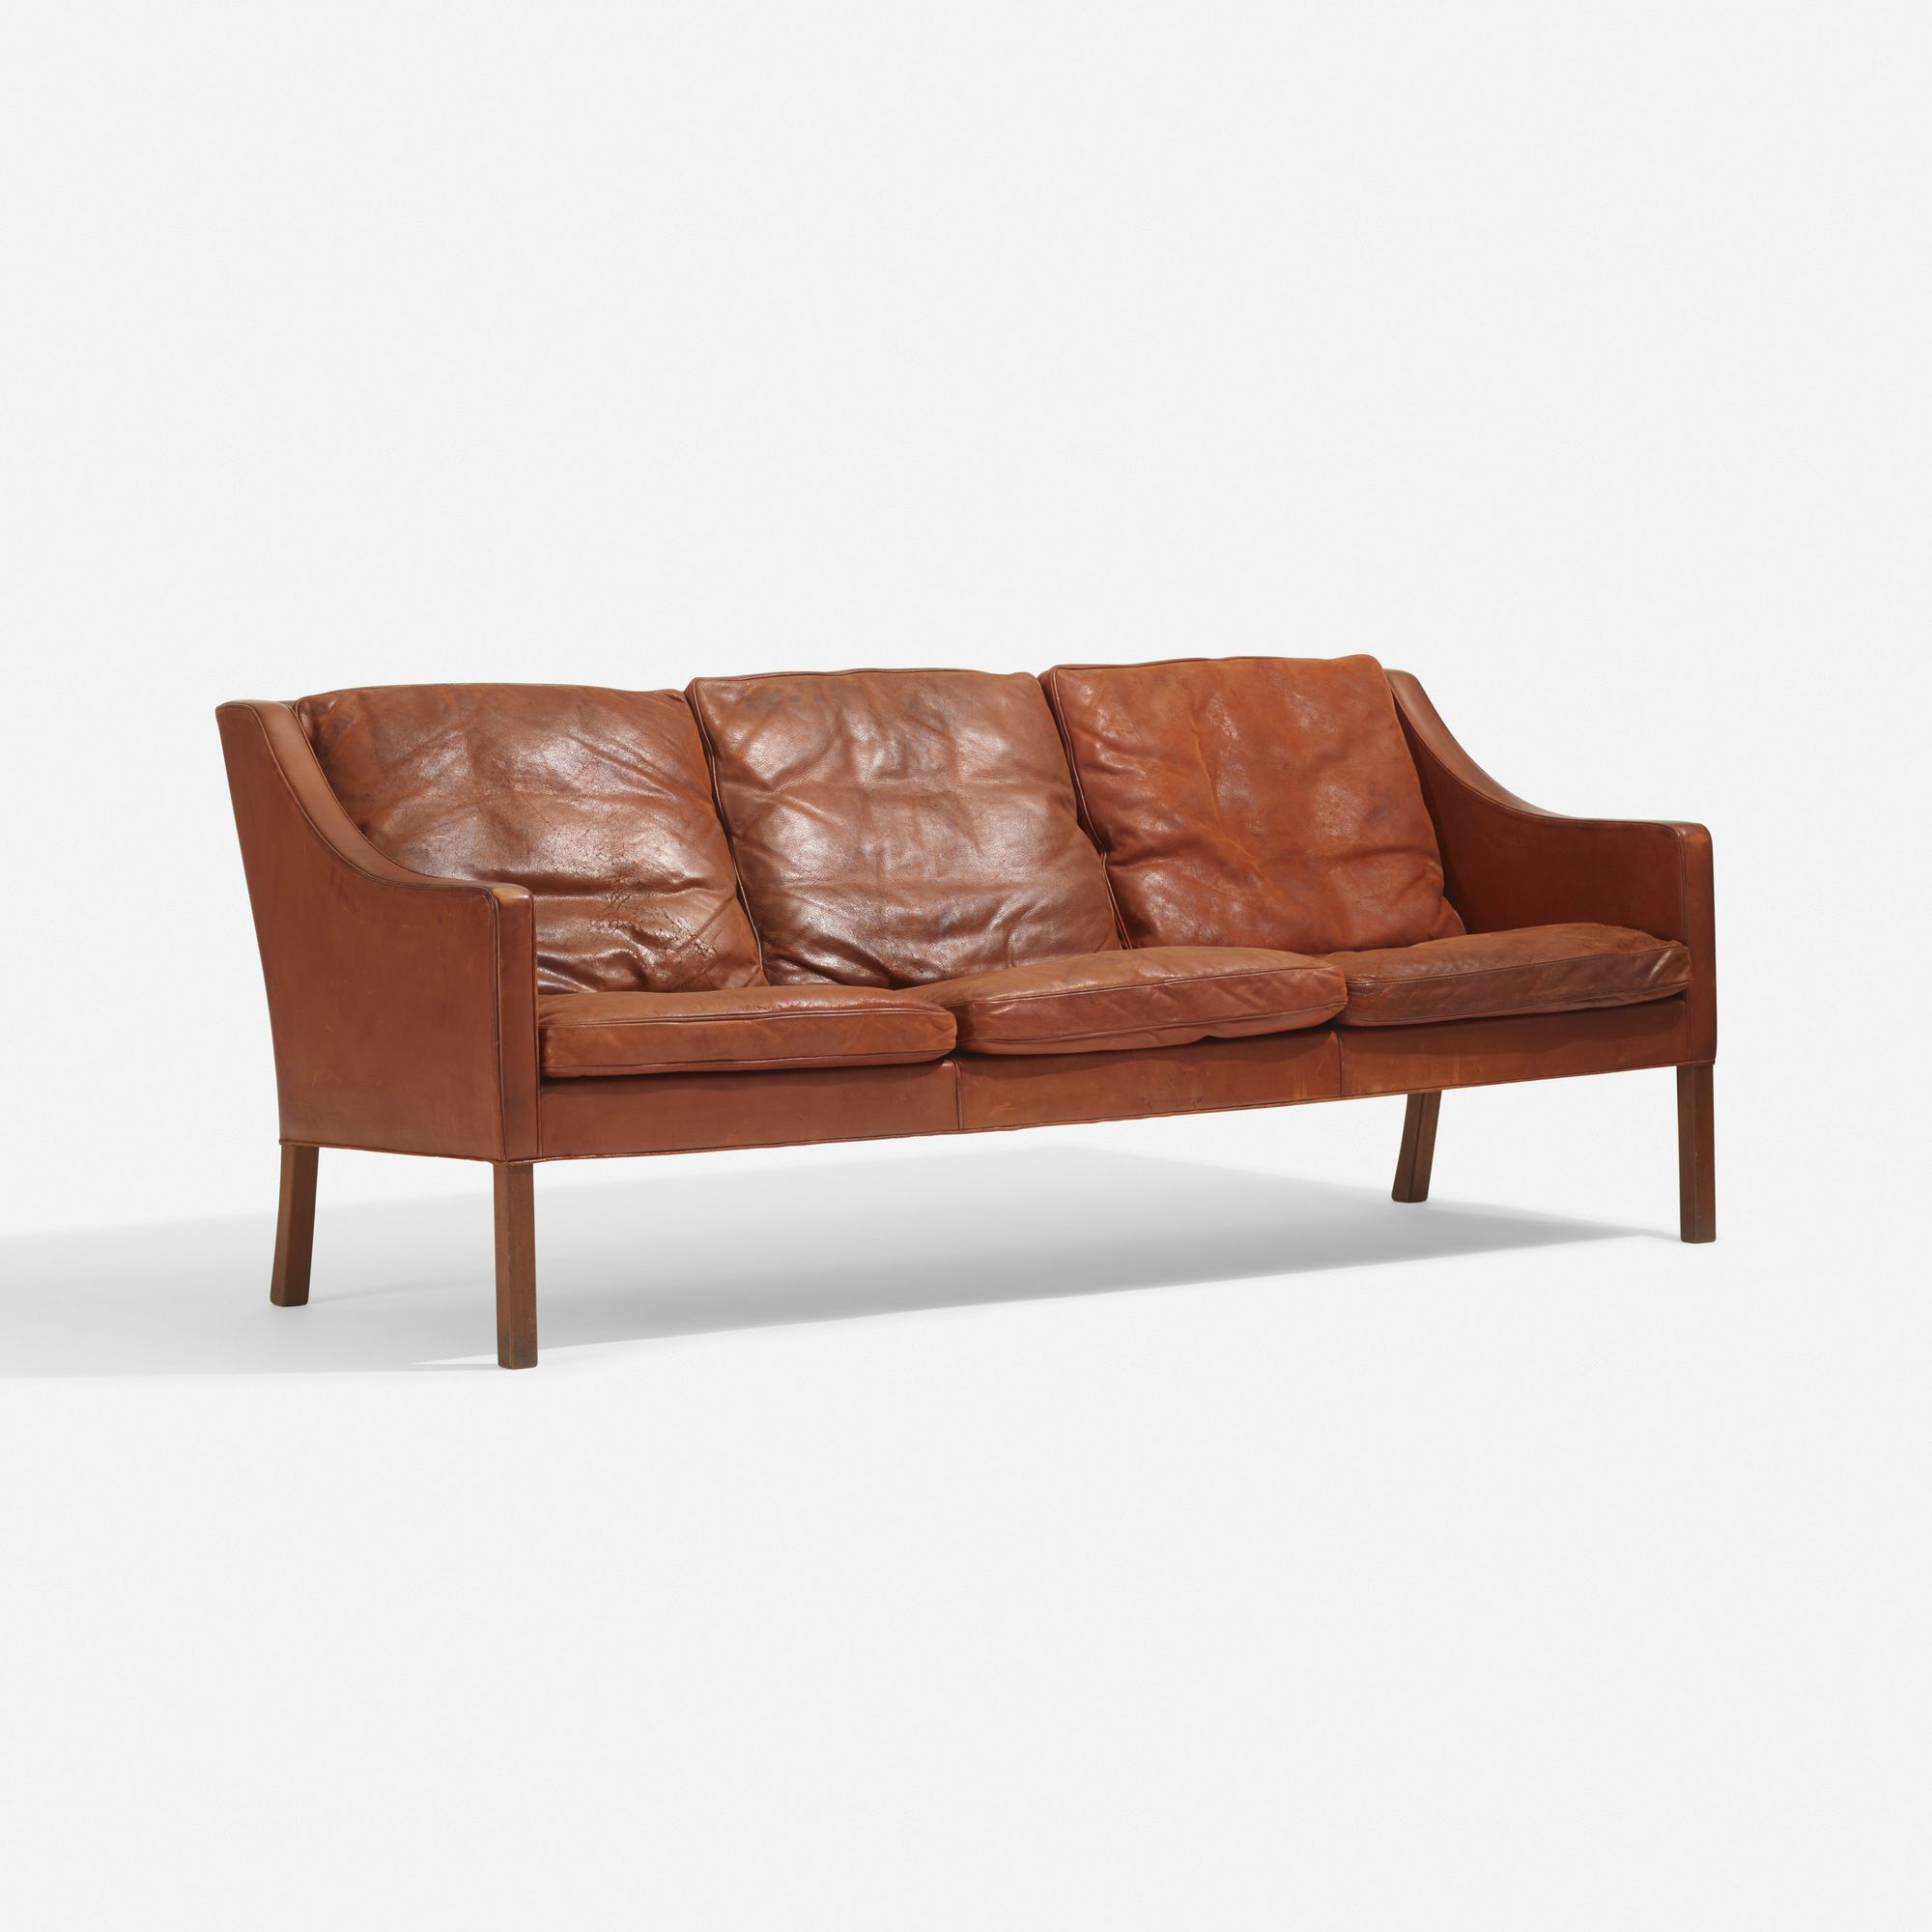 Lot 114 B Rge Mogensen Sofa 1963 Leather Teak 72 W X 32 D X  # Muebles Natalia Esperanza